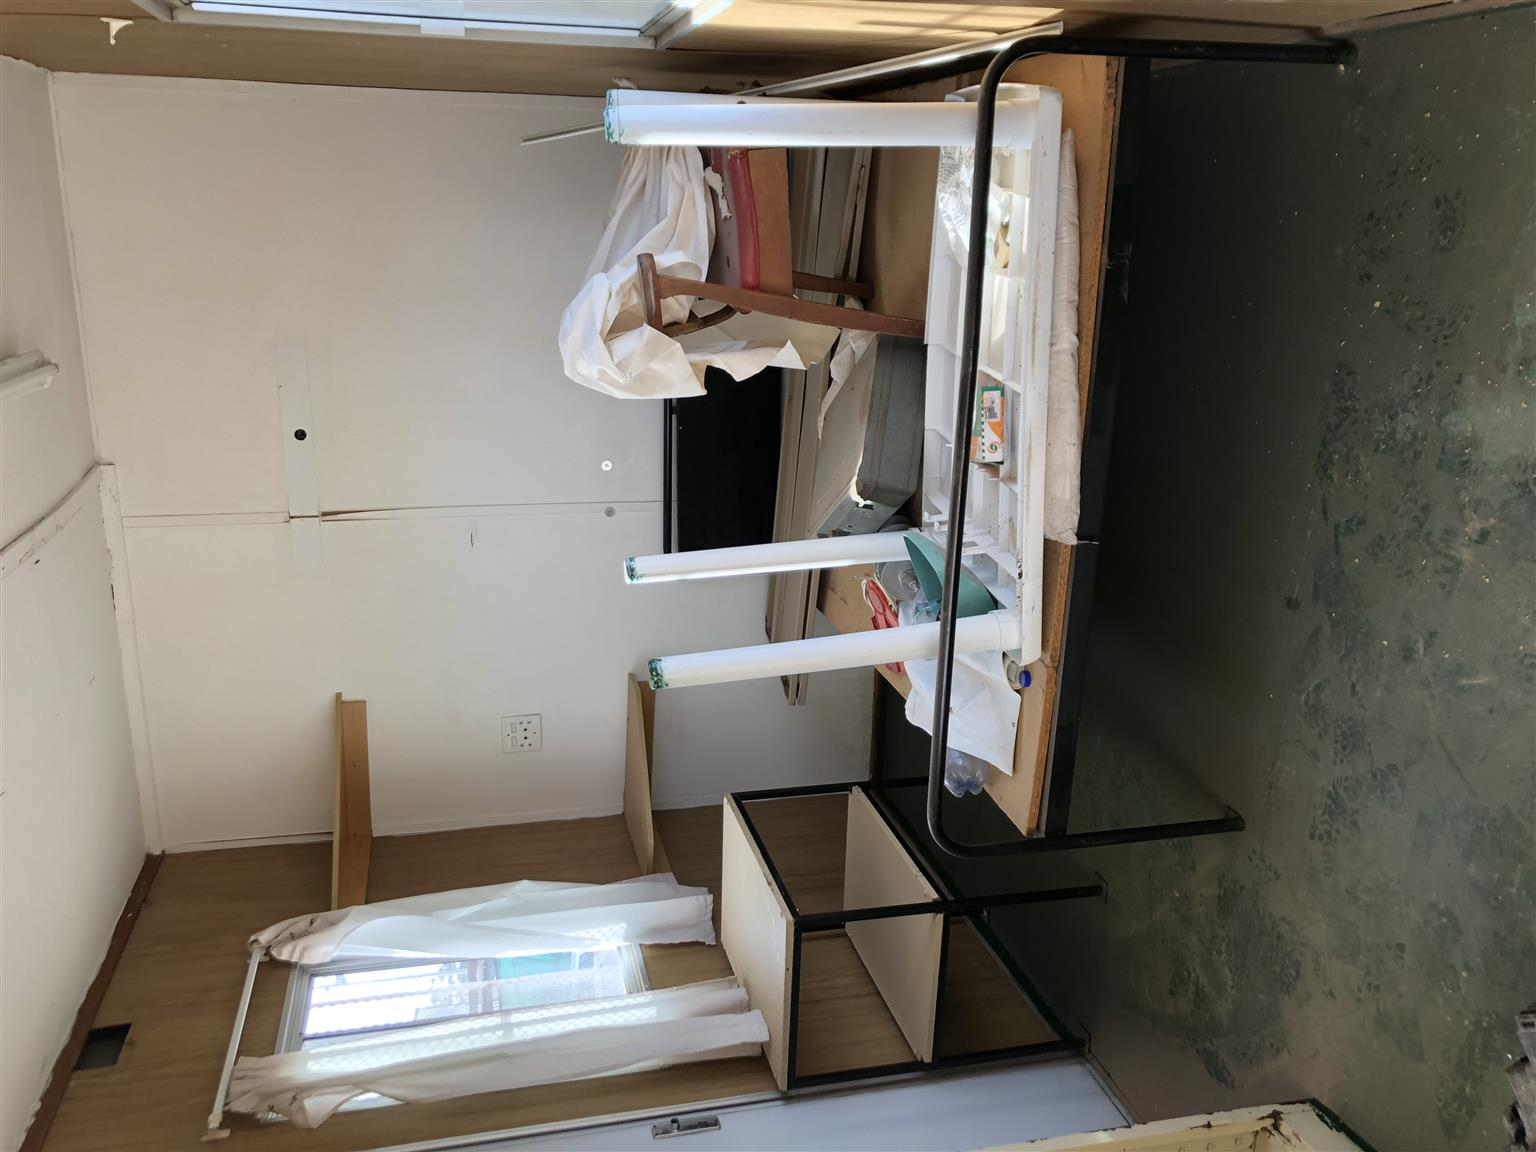 C1 Parkhome - 2 bedroom/office space